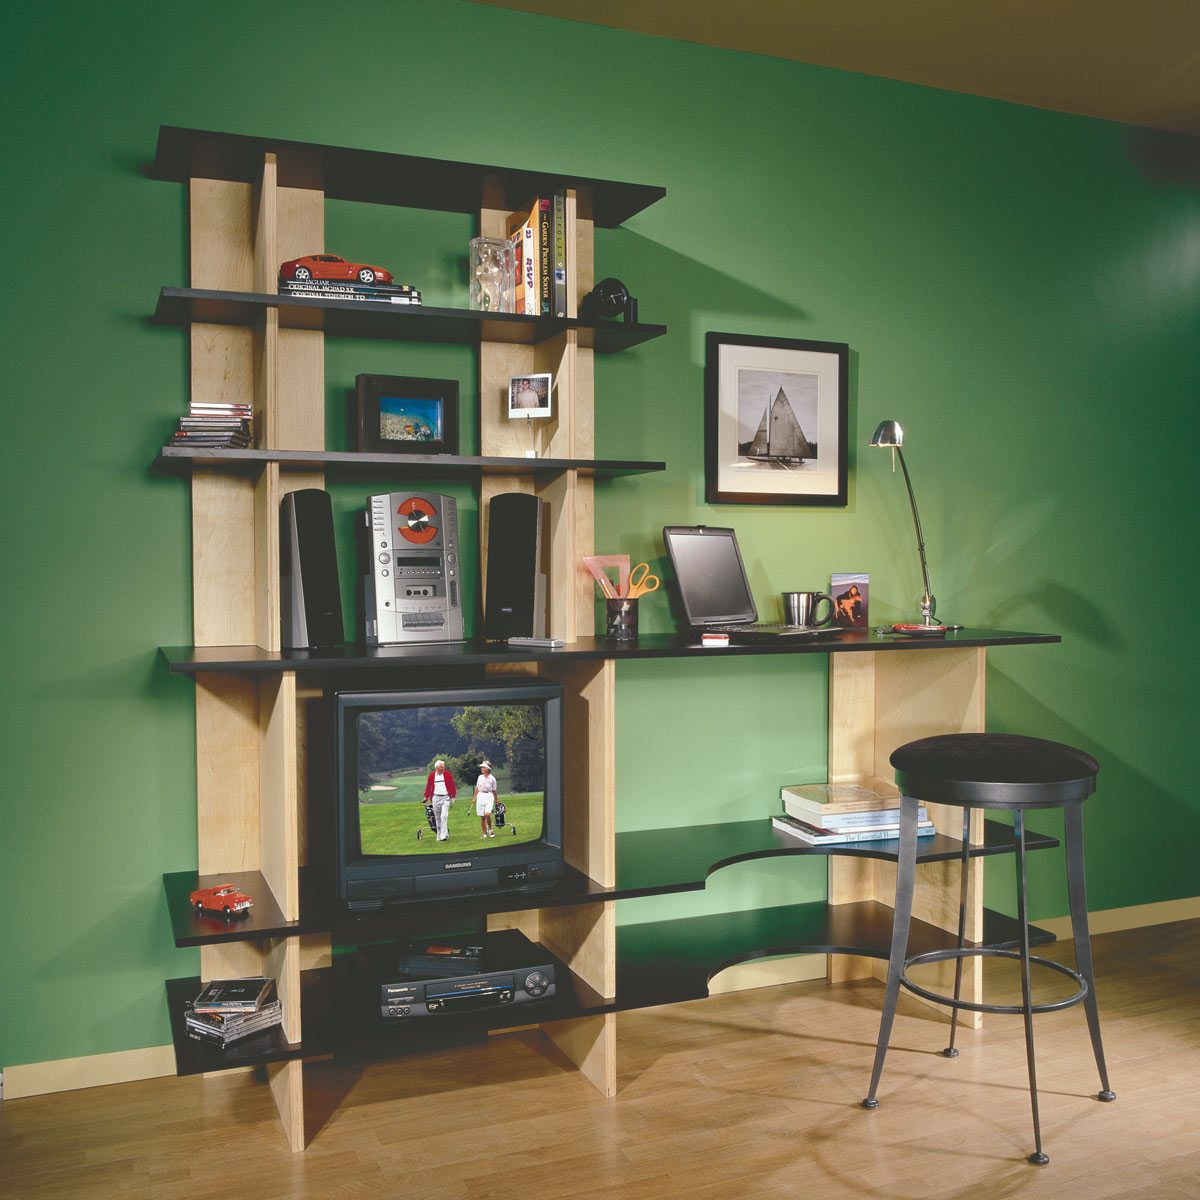 Stackable Bookshelves plus a Desk